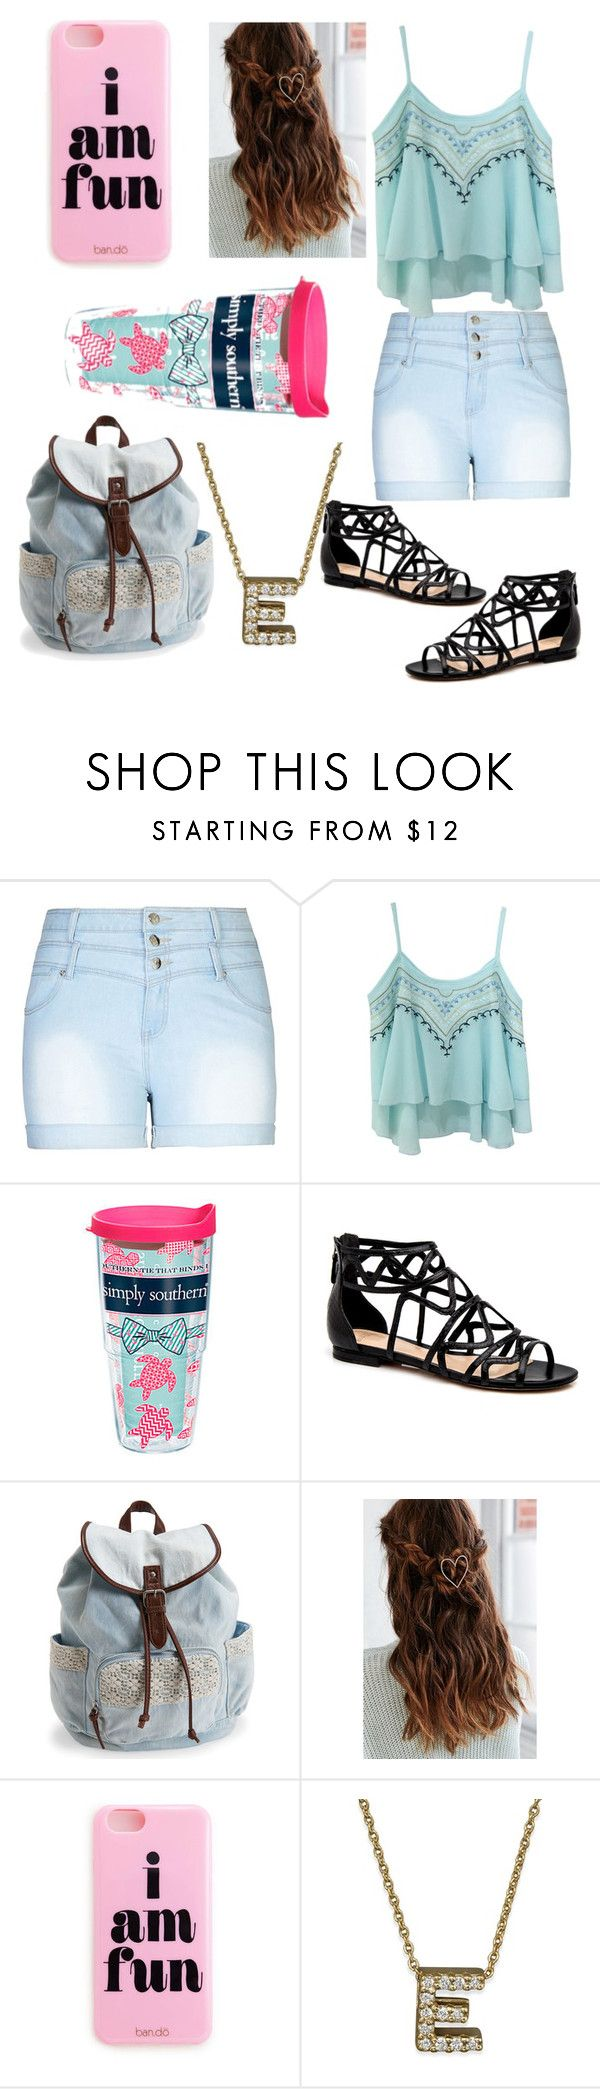 """simply southern"" by evestaylor ❤ liked on Polyvore featuring City Chic, Tervis, Aéropostale, Urban Outfitters, Roberto Coin and plus size clothing"